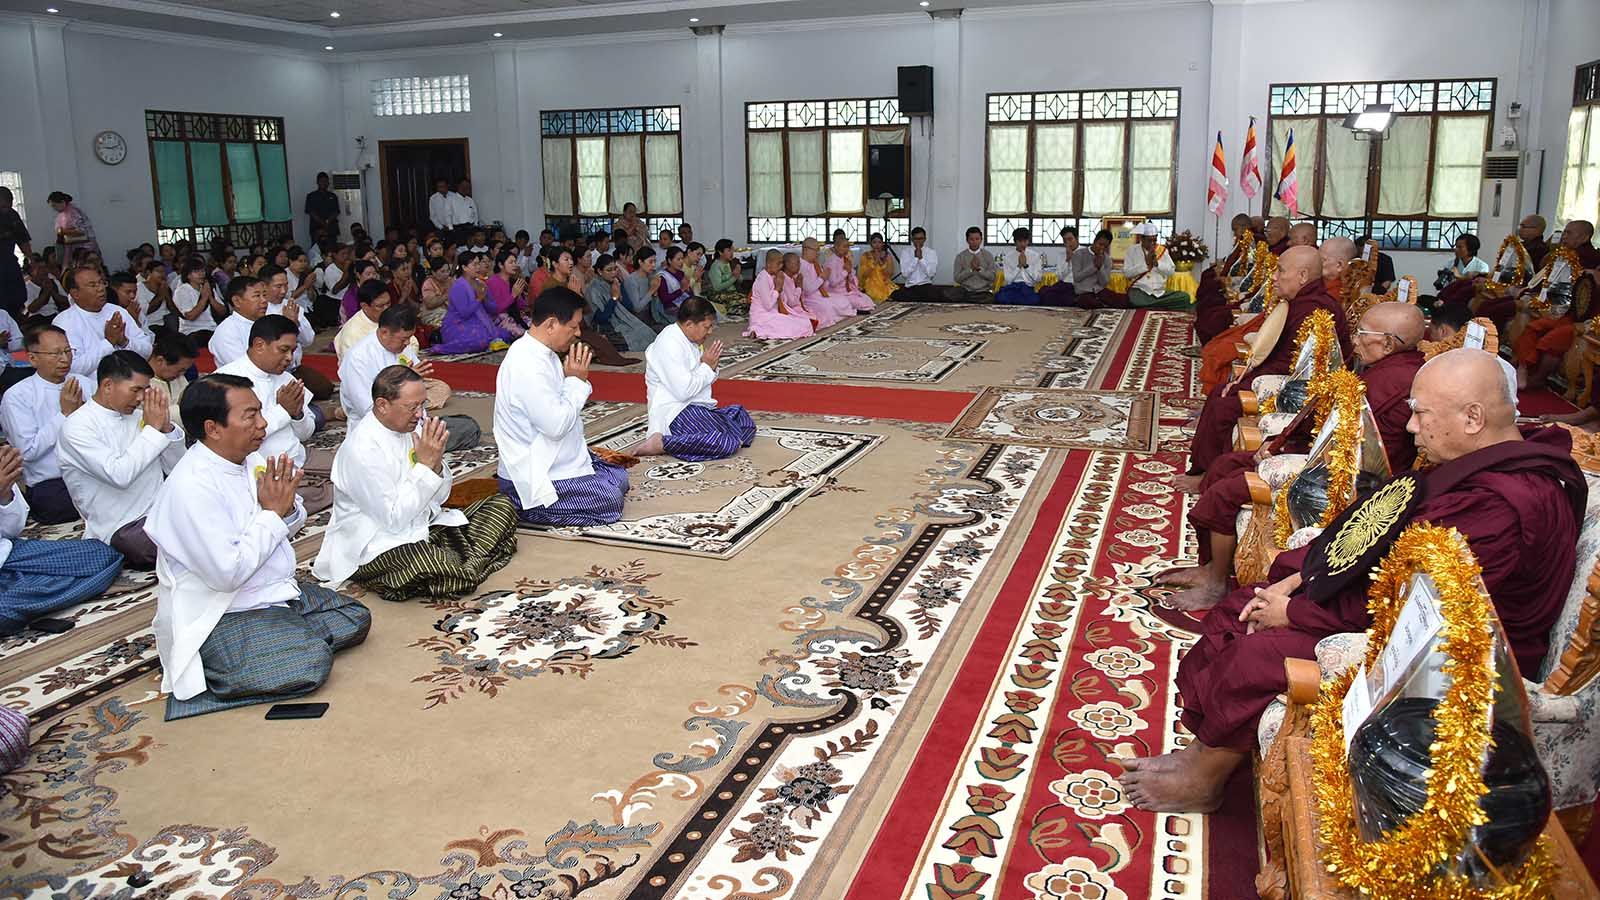 The congregation led by Senior General Min Aung Hlaing pay homage to the members of Sangha at the state driving ceremony at Kabar Aye Pagoda Road in Yangon yesterday.  Photo: Office of the C-In-C of Defence Services